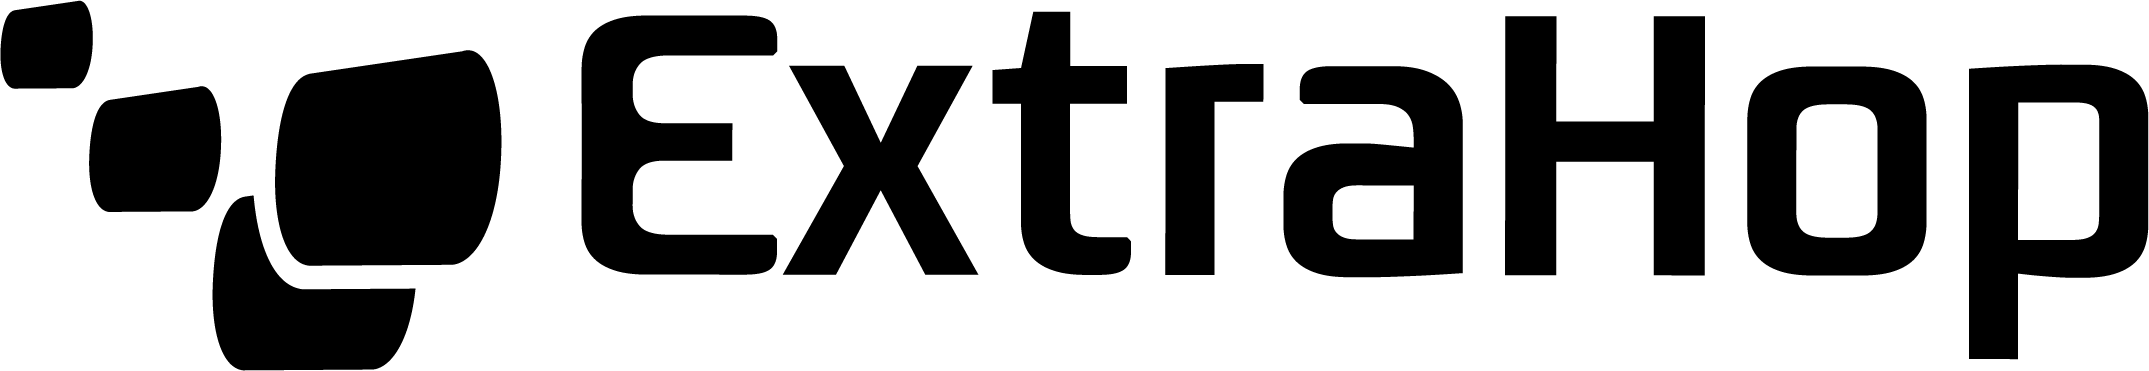 ExtraHop_Networks-logo.png